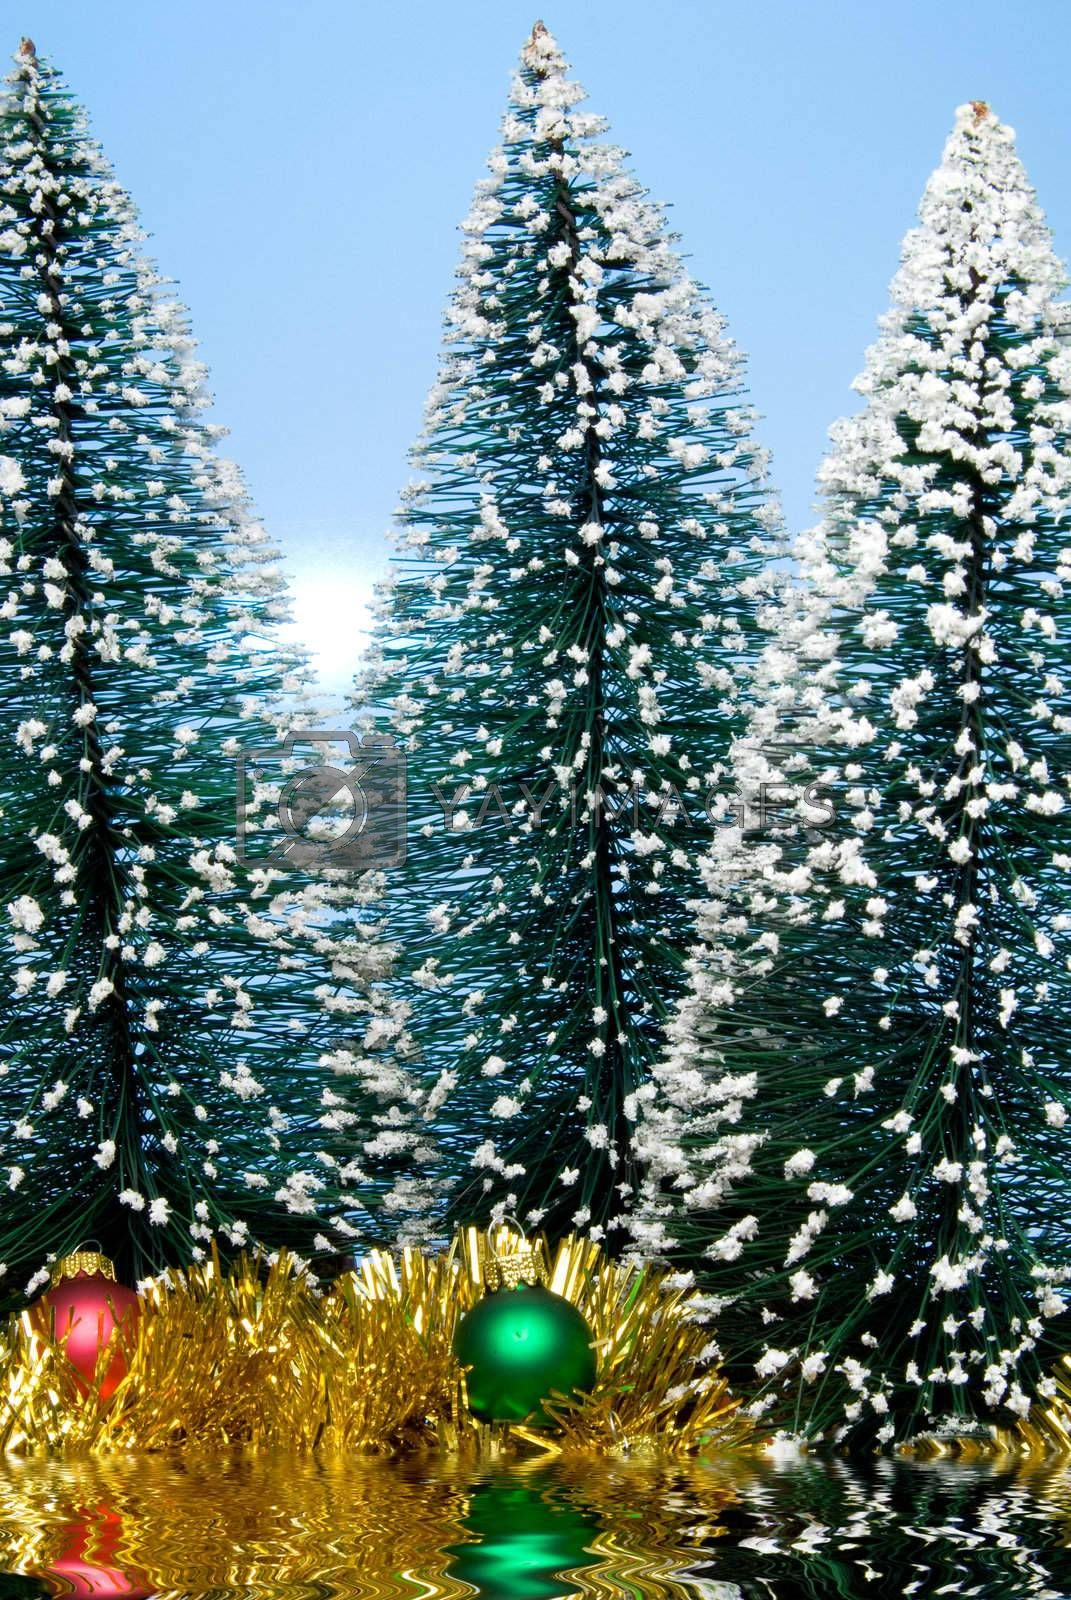 Christmas trees covered in snow by a lake..